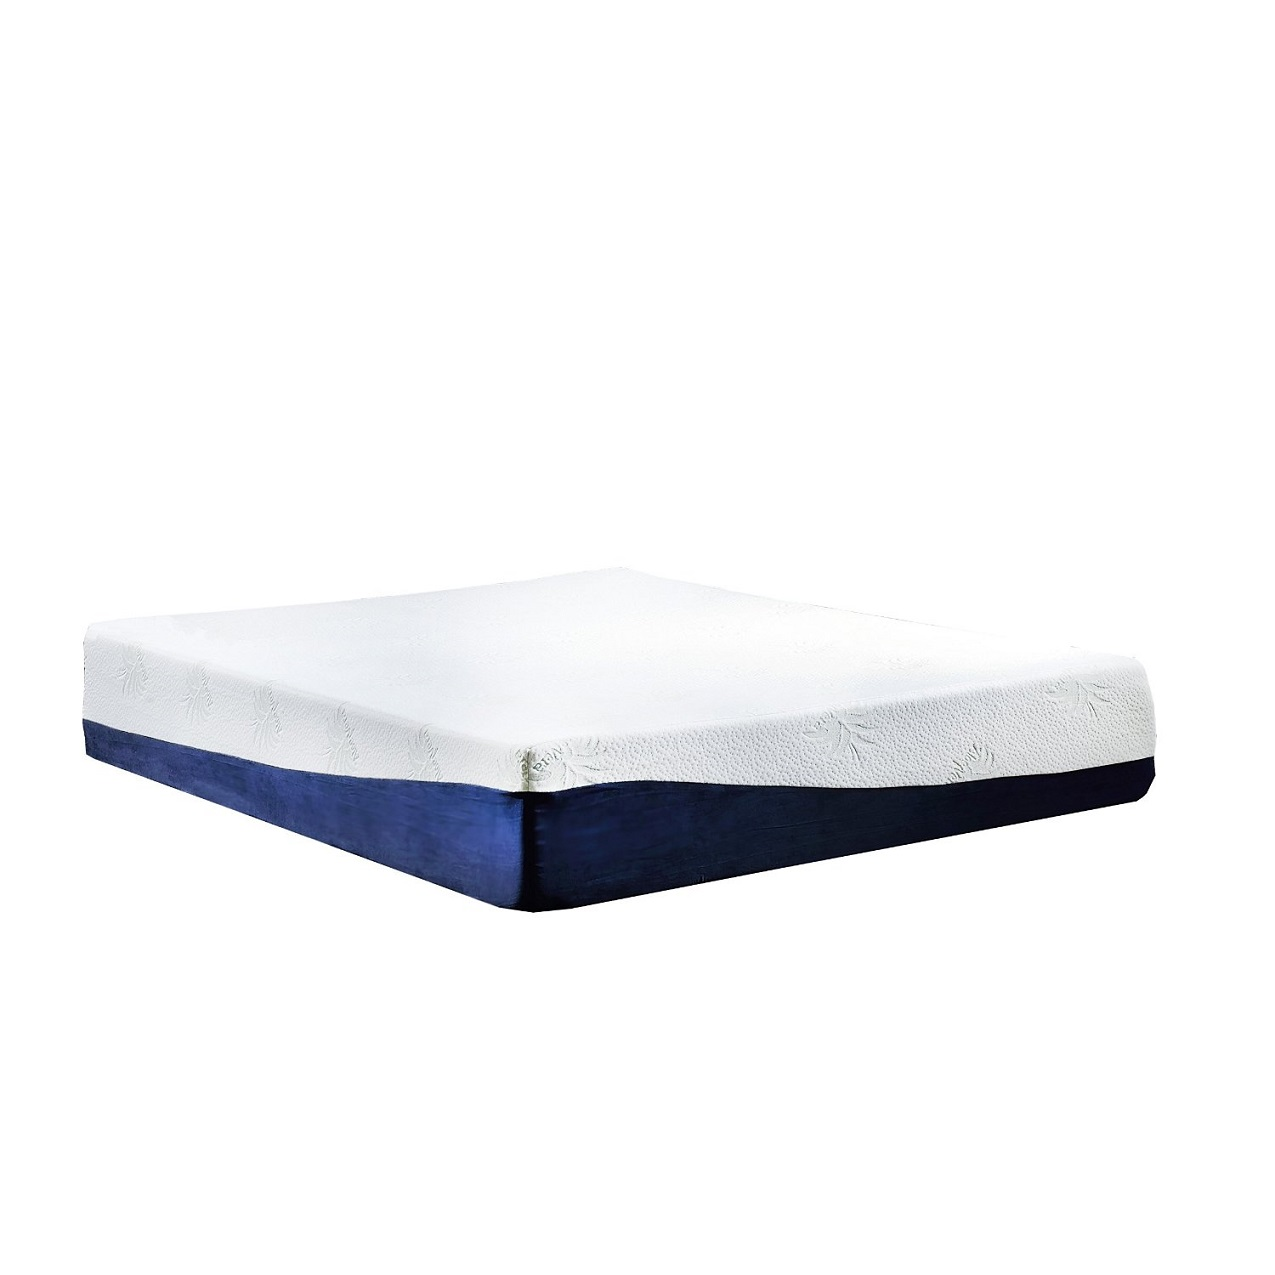 Swiss Ortho Sleep 13-Inch High-Density, 3 x Layered Gel & Memory Foam Mattress with Bamboo Cover Picture